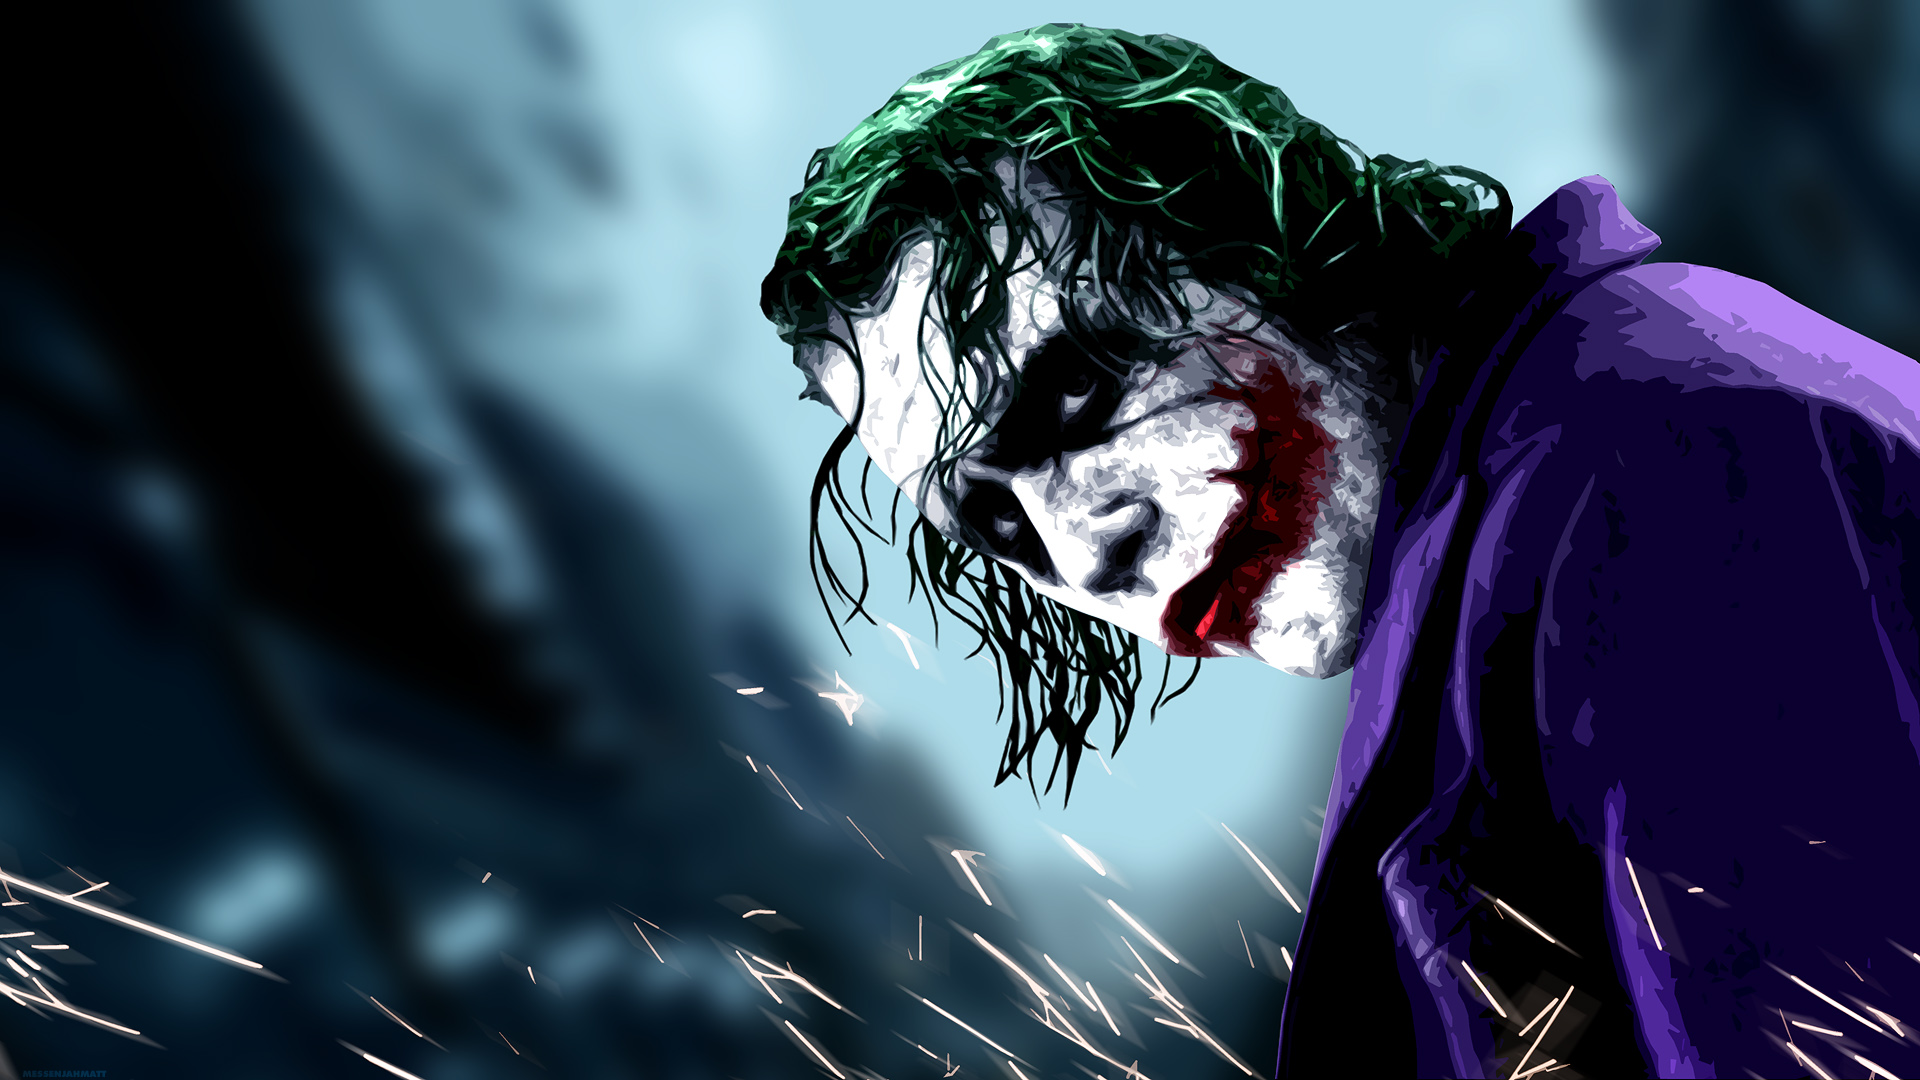 joker background joker images joker movie images joker widescreen 1920x1080